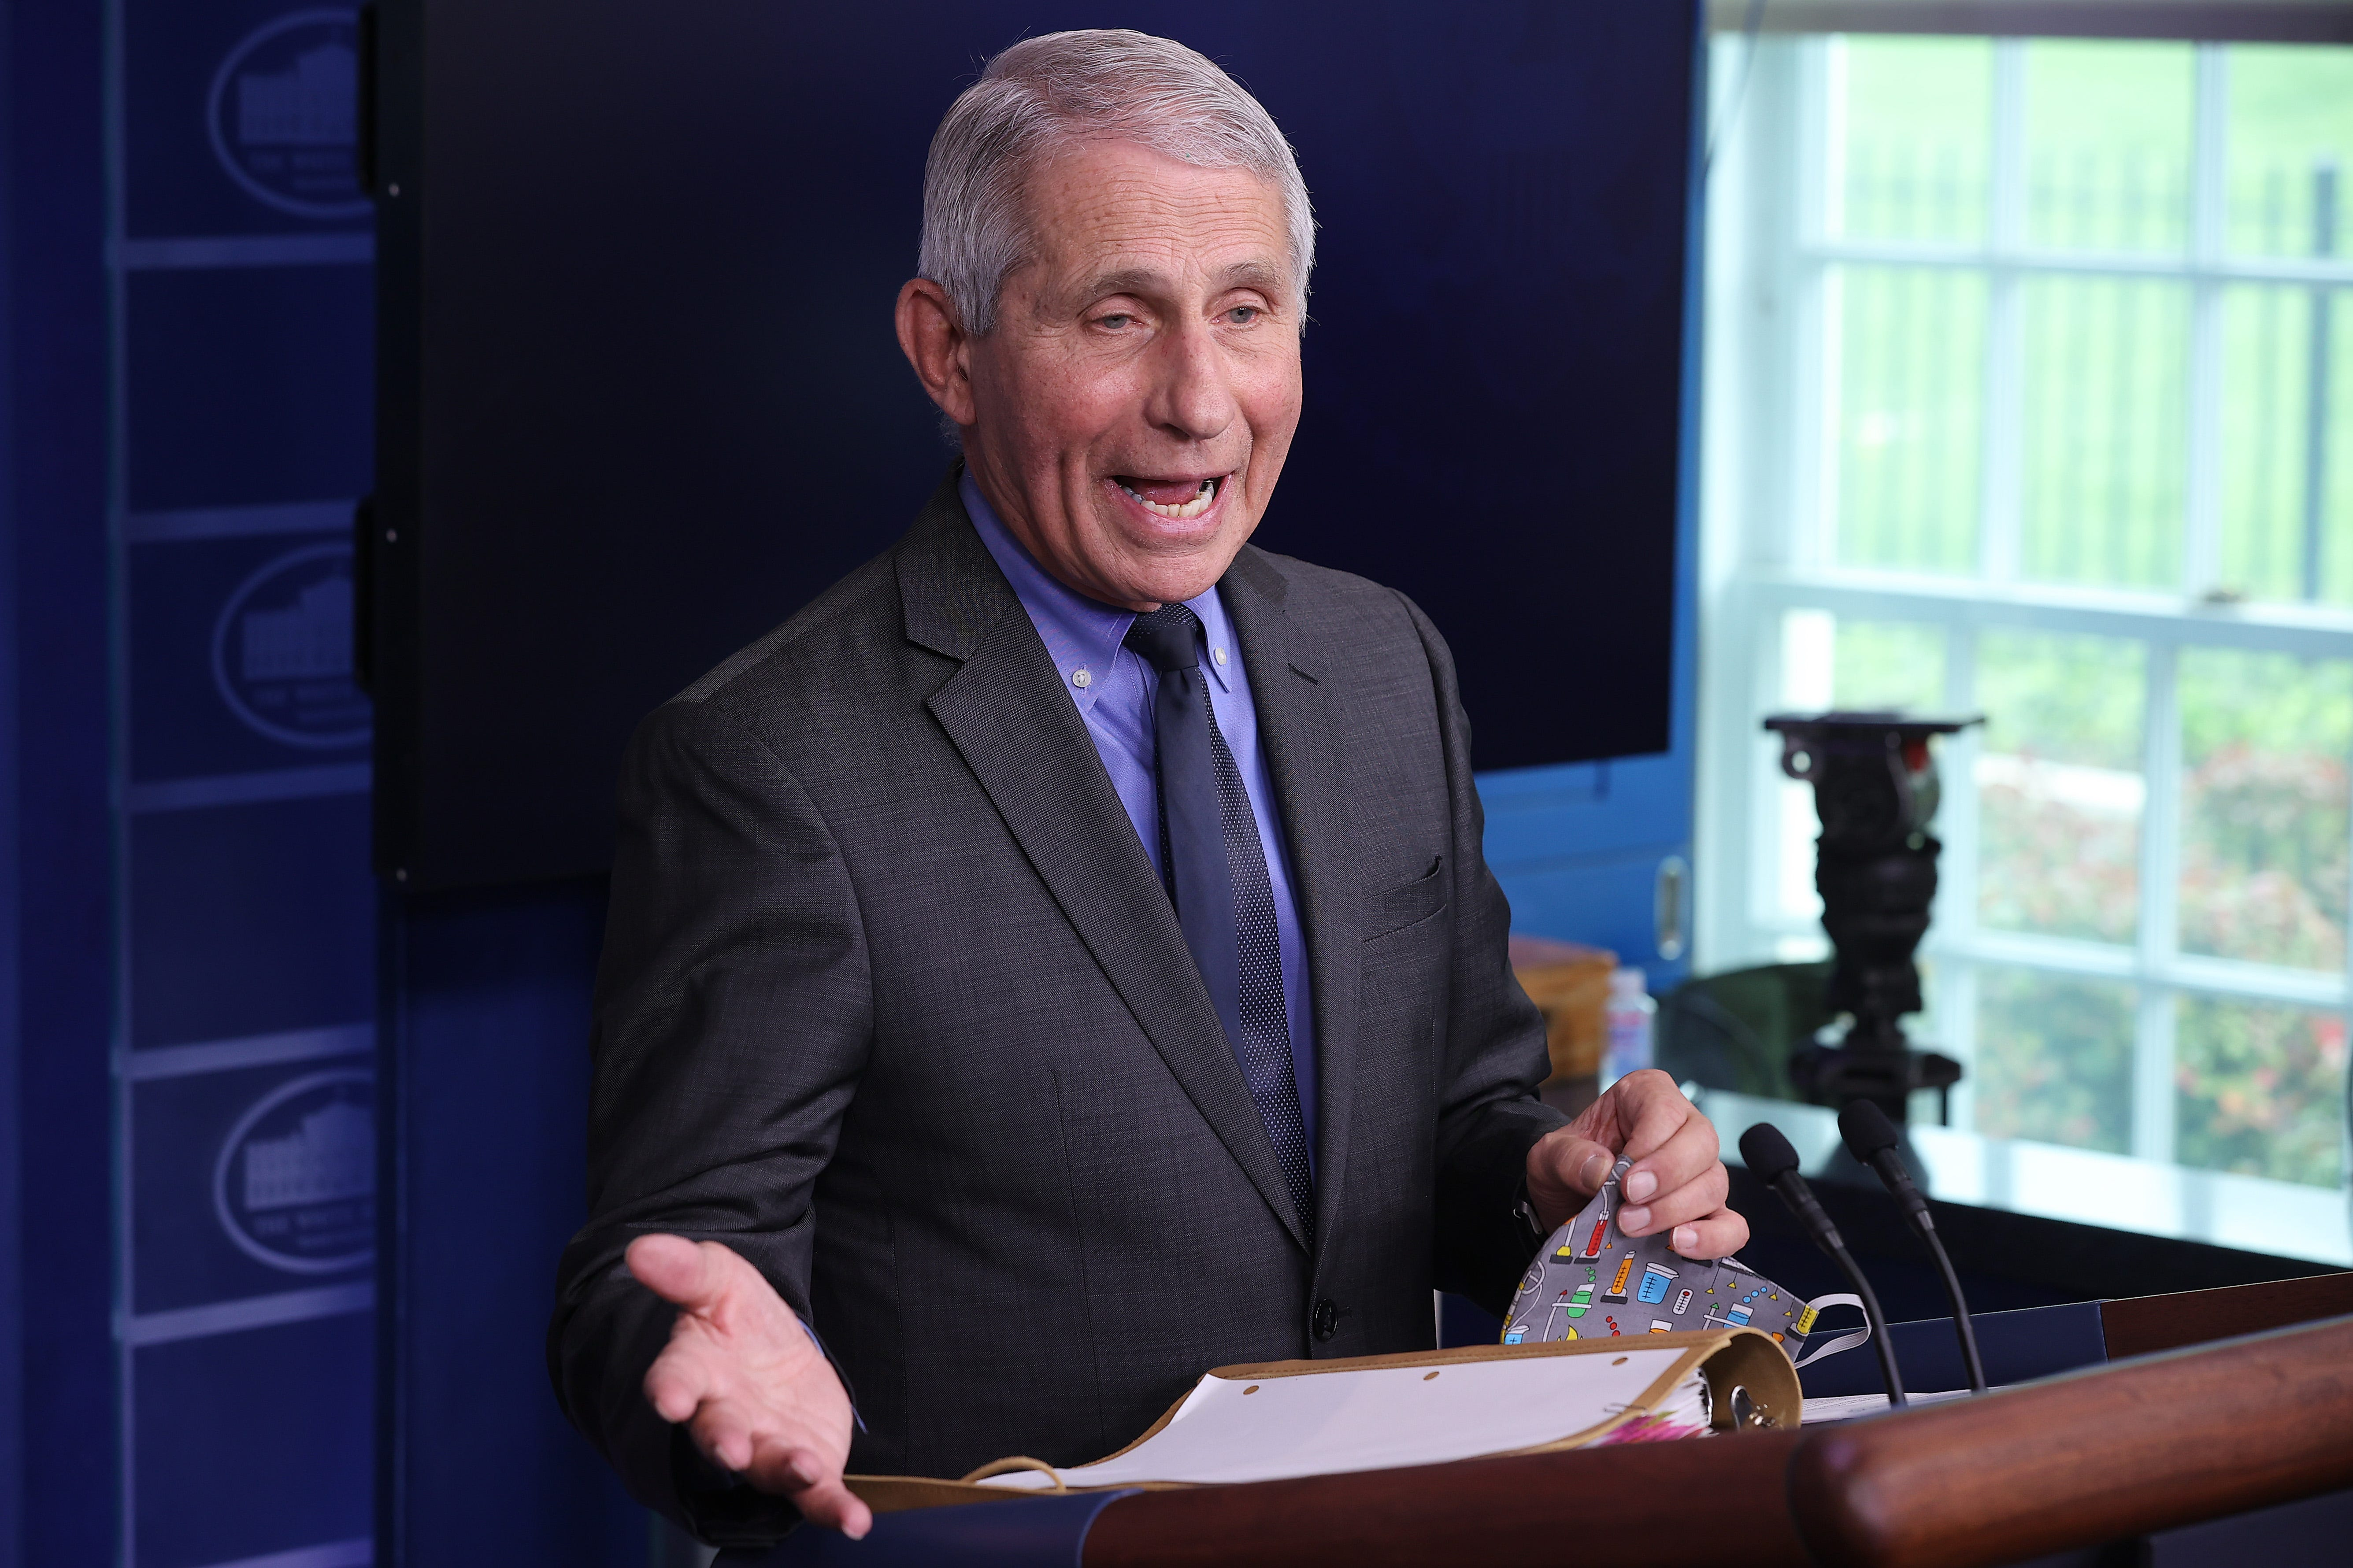 I remember it very well : Dr. Fauci describes a secret 2020 meeting to talk about COVID origins